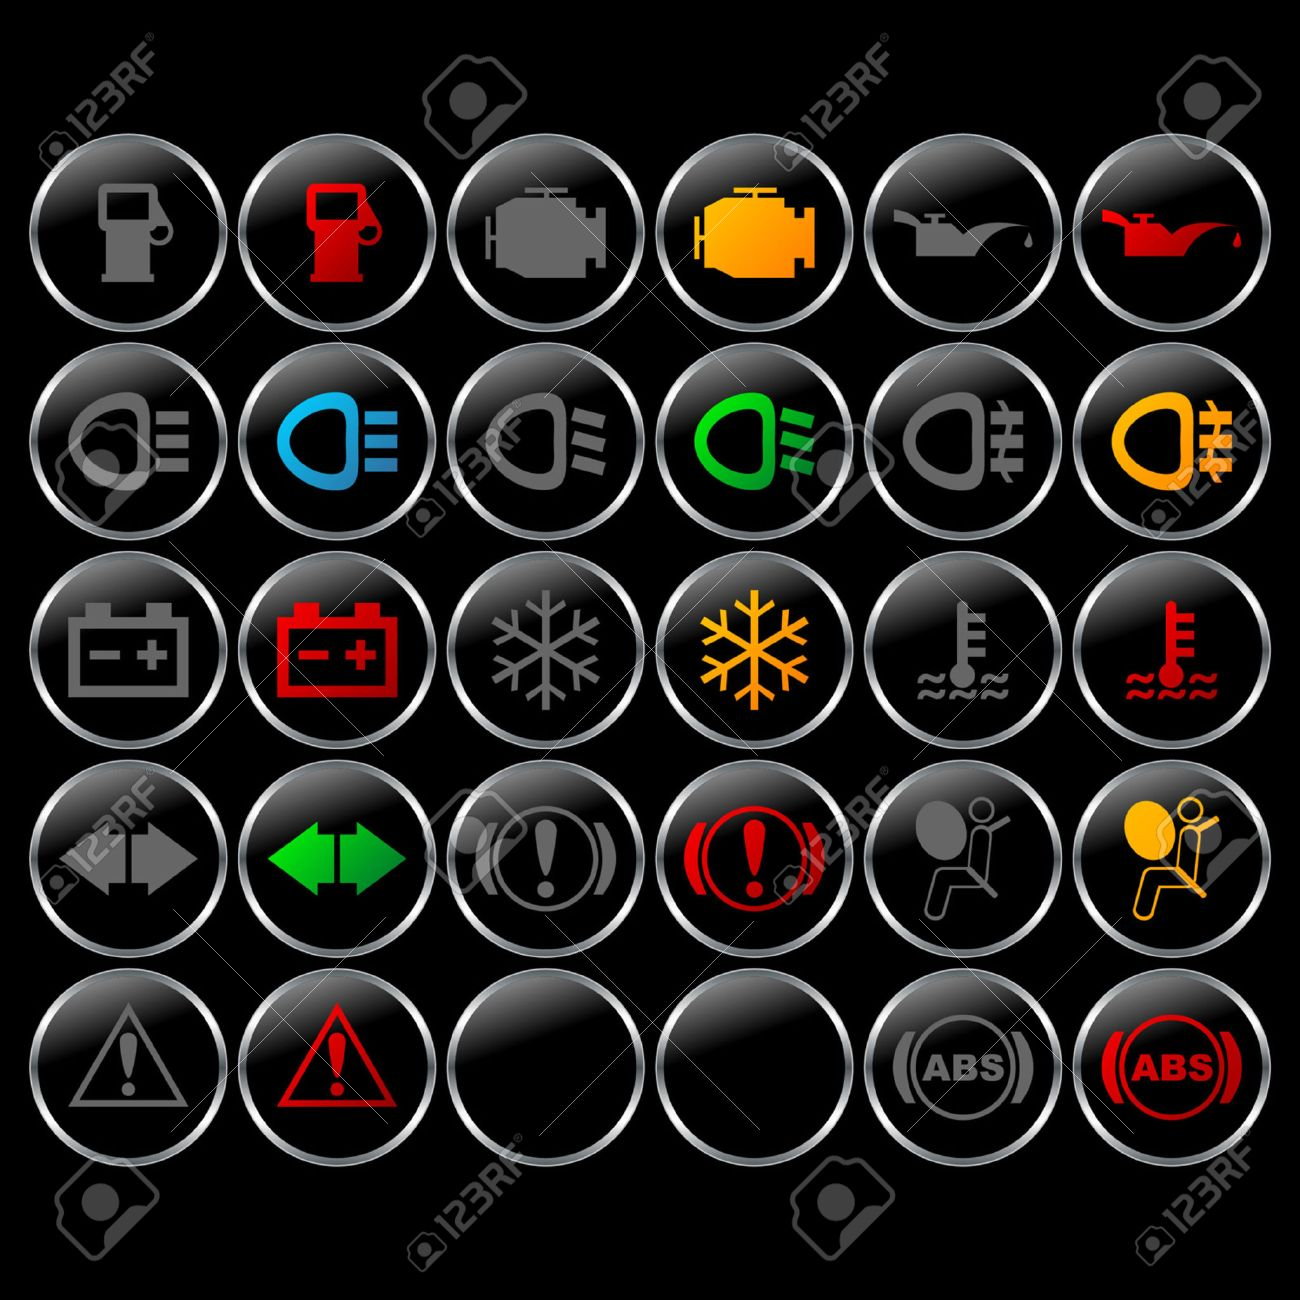 Different Car Dashboard Symbols With Lights On And Off Royalty Free ...